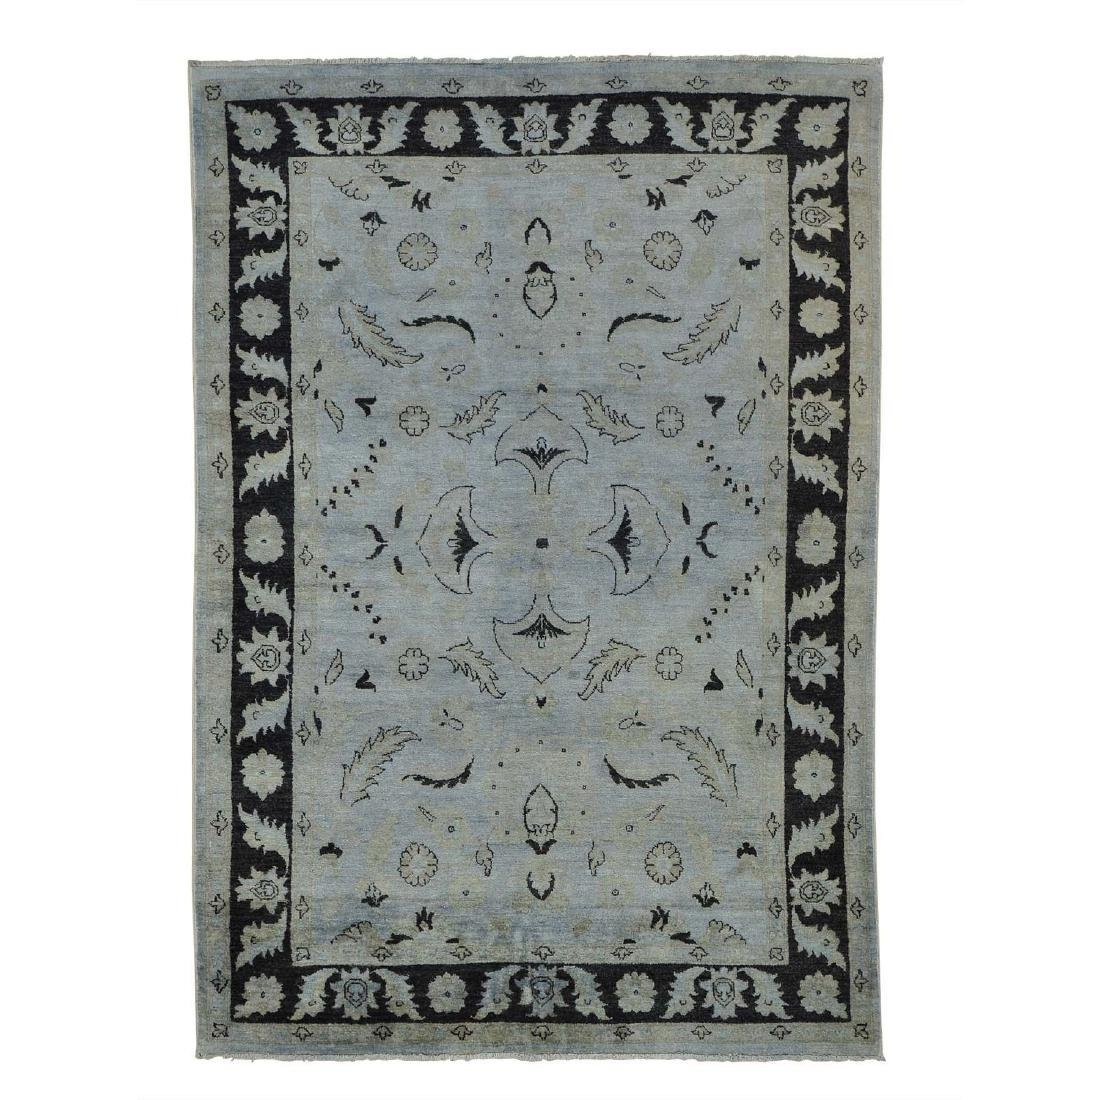 Overdyed Sultanabad Hand Knotted Wool Rug 5.6x8